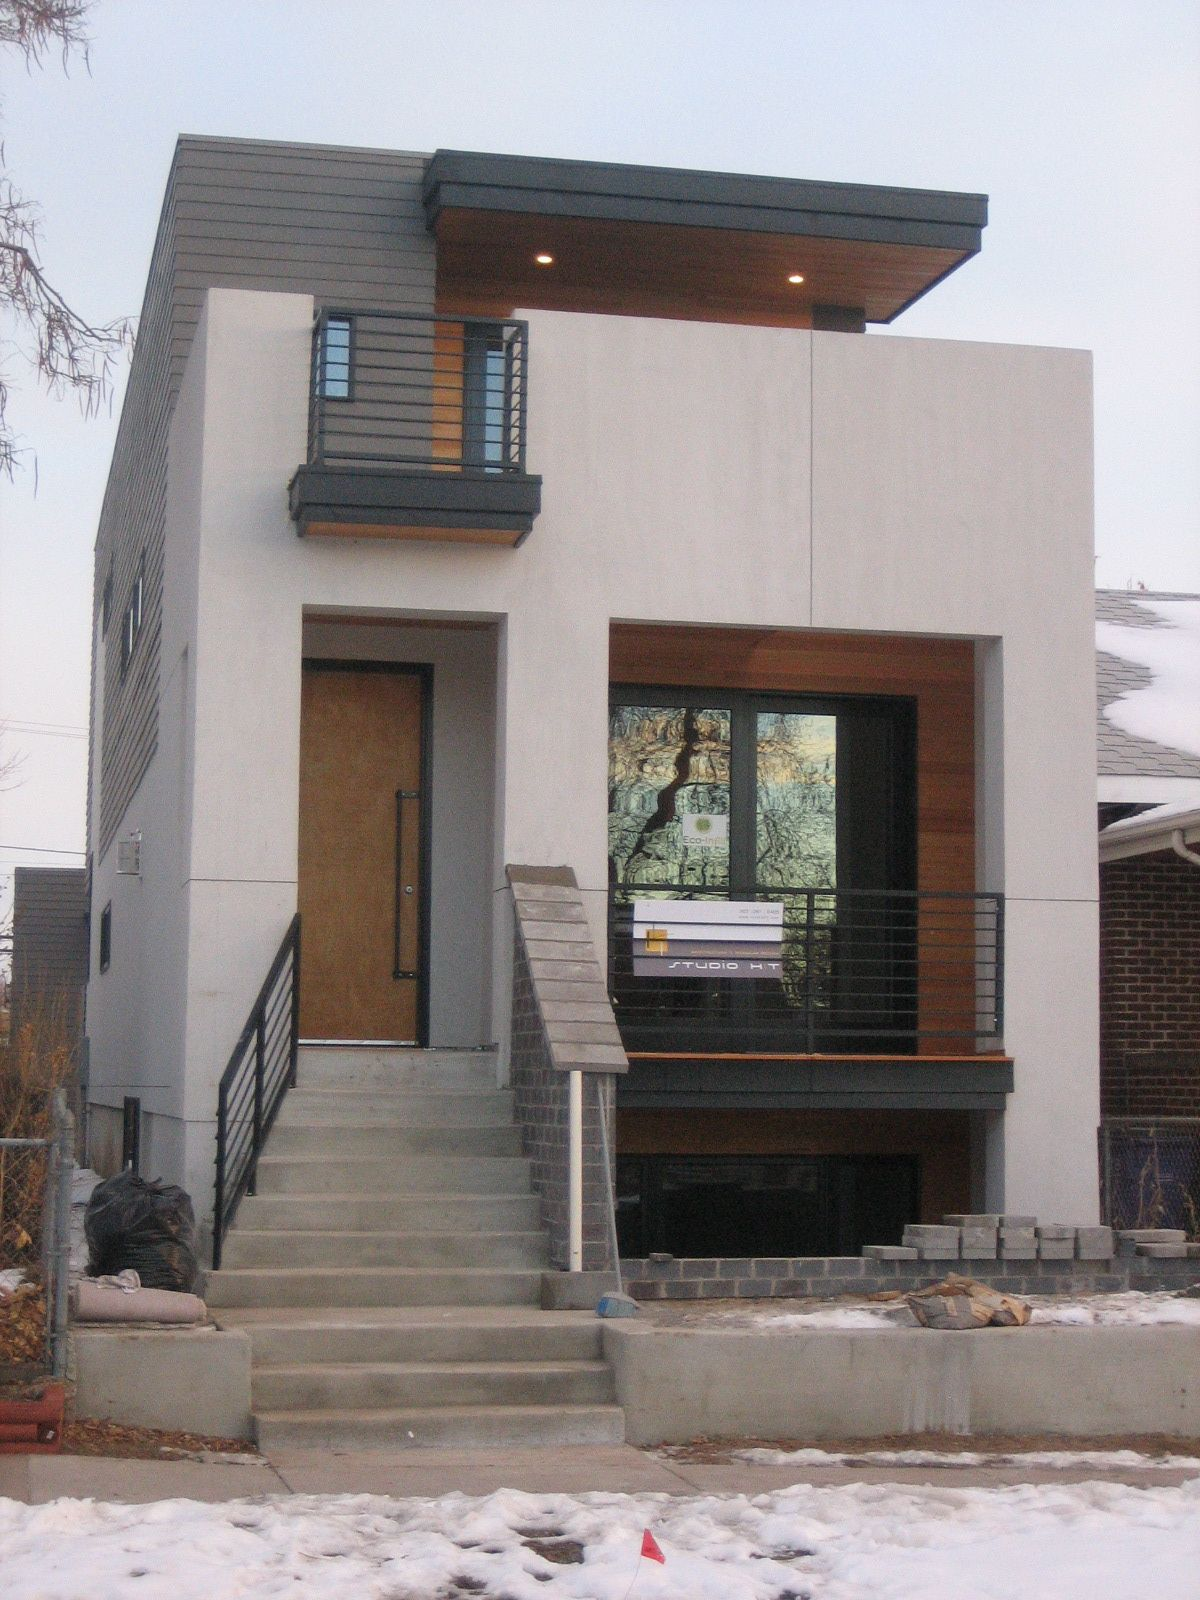 Home Exterior Design 5 Ideas 31 Pictures: Small Modern House Design With White Walol Using Large